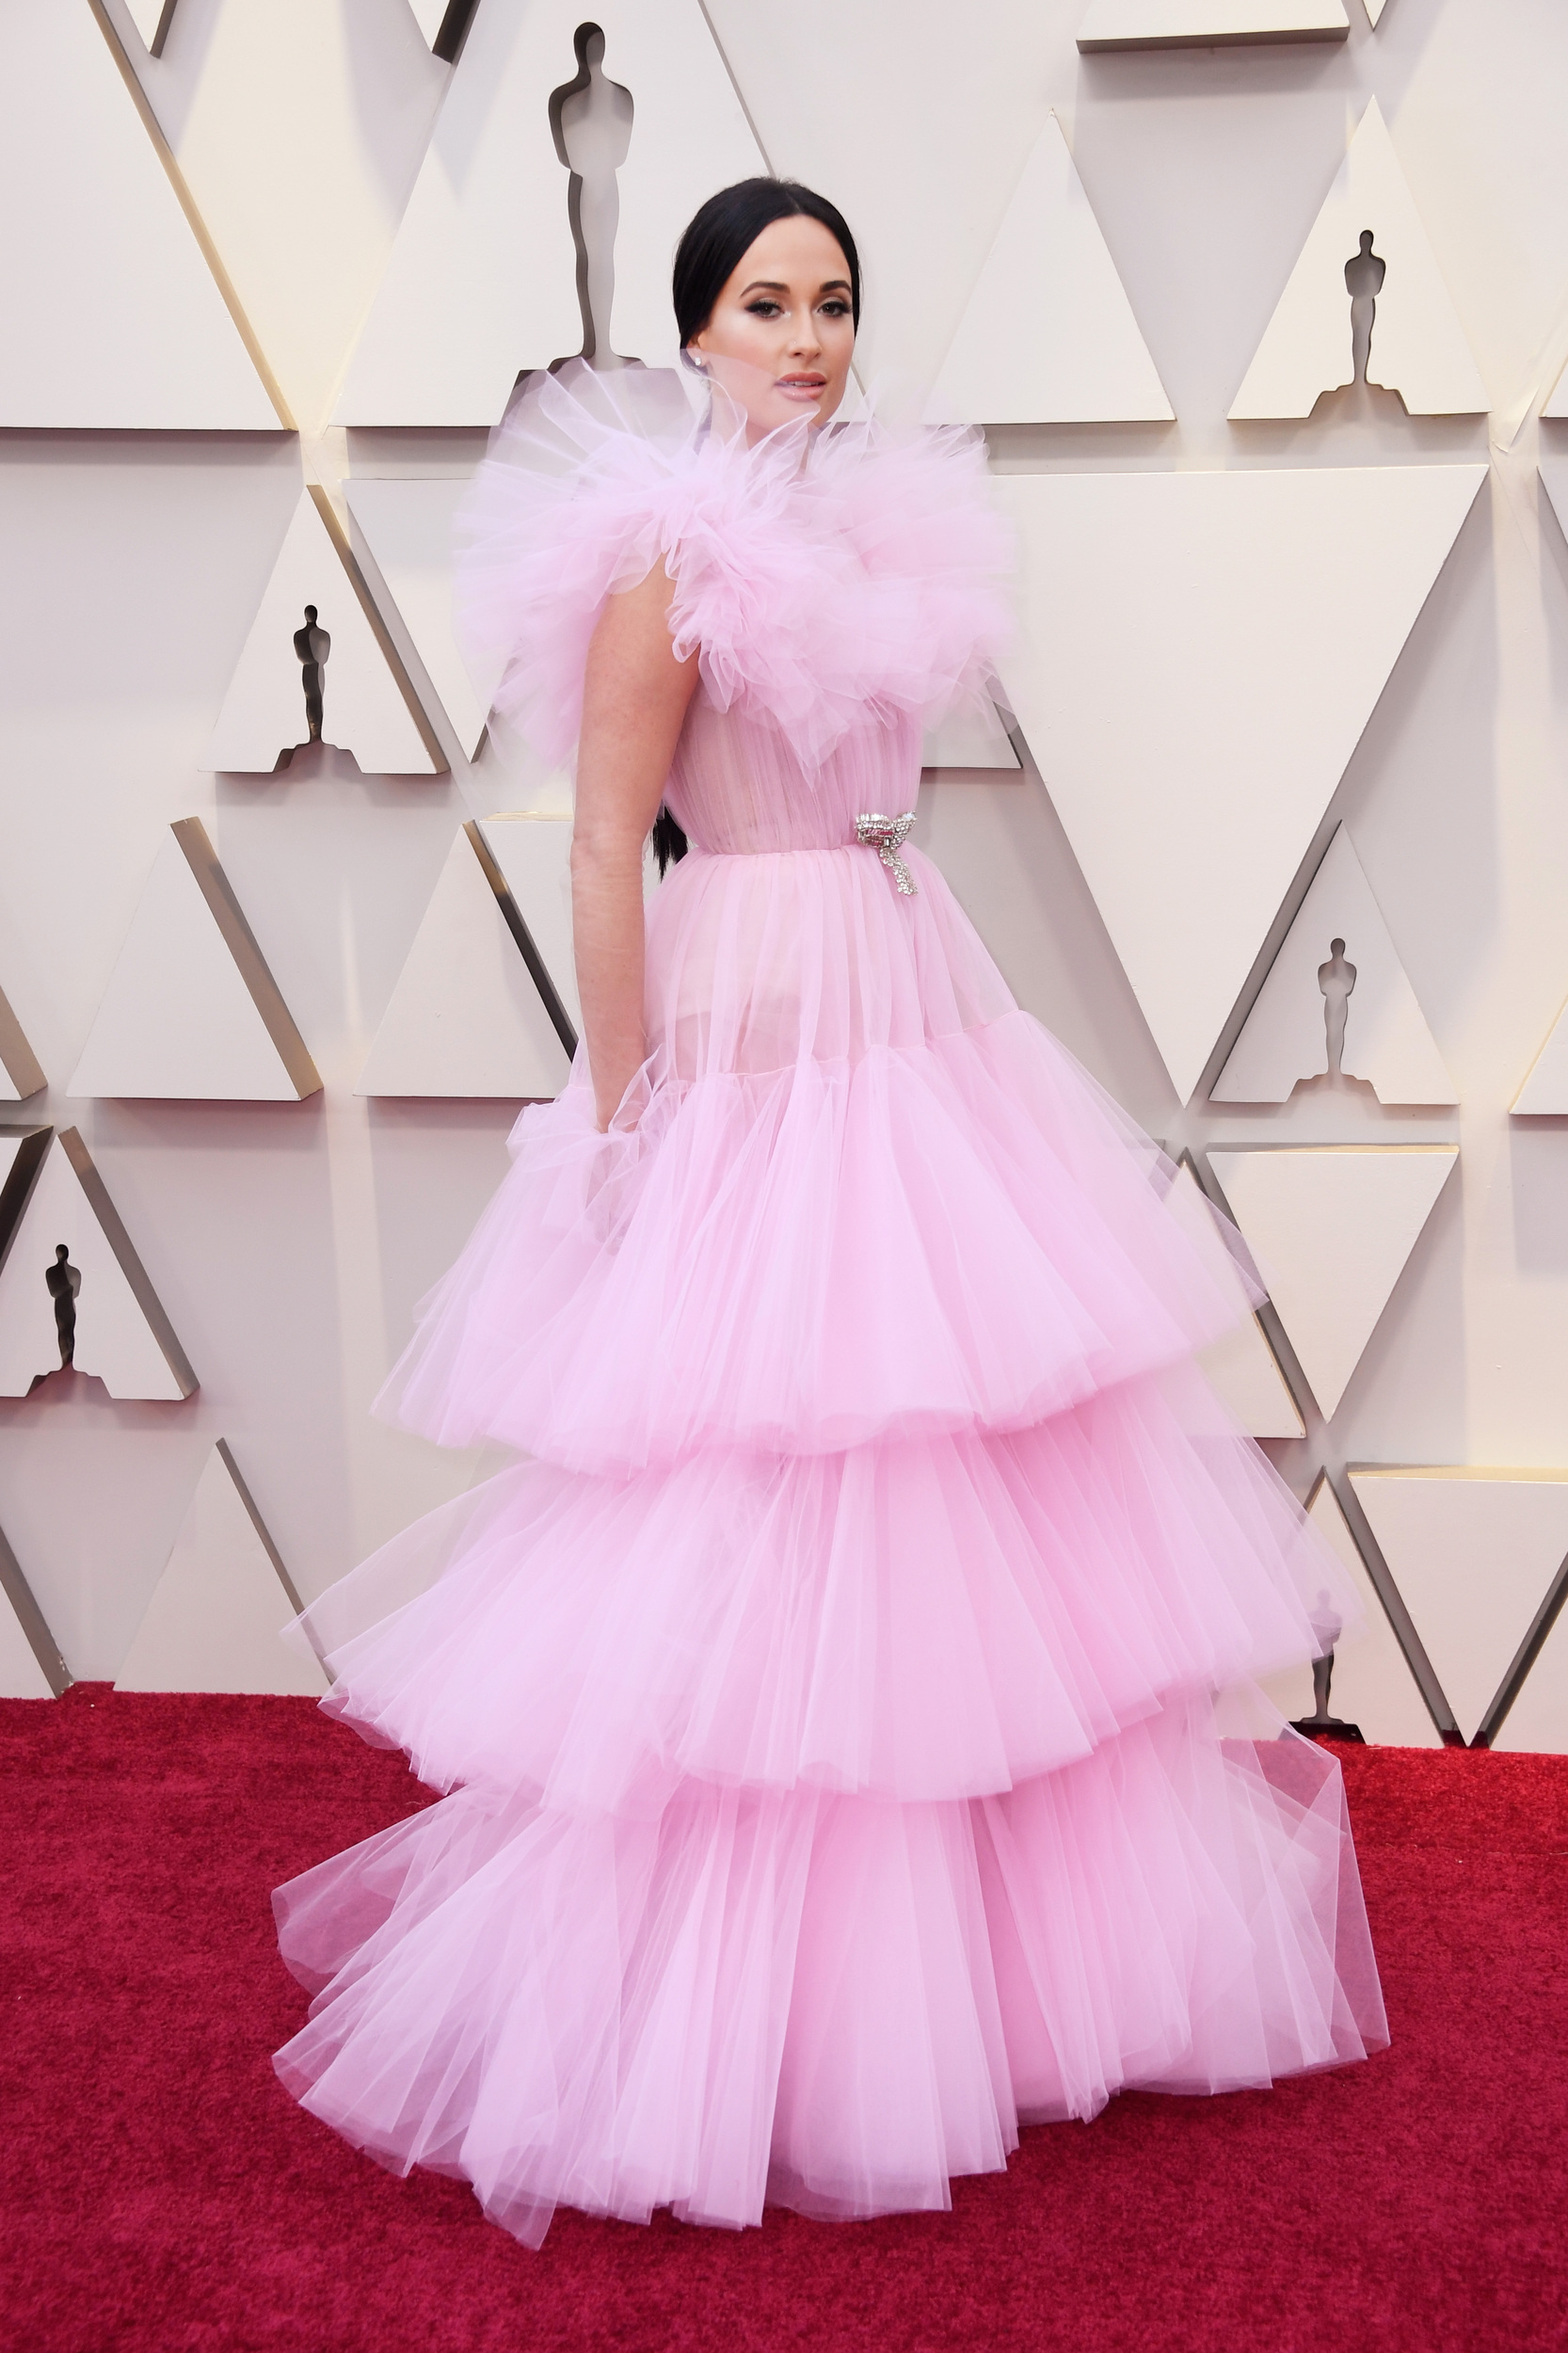 Just a stray thought: if your tulle is blocking your peripheral vision, your dress might have too much tulle.